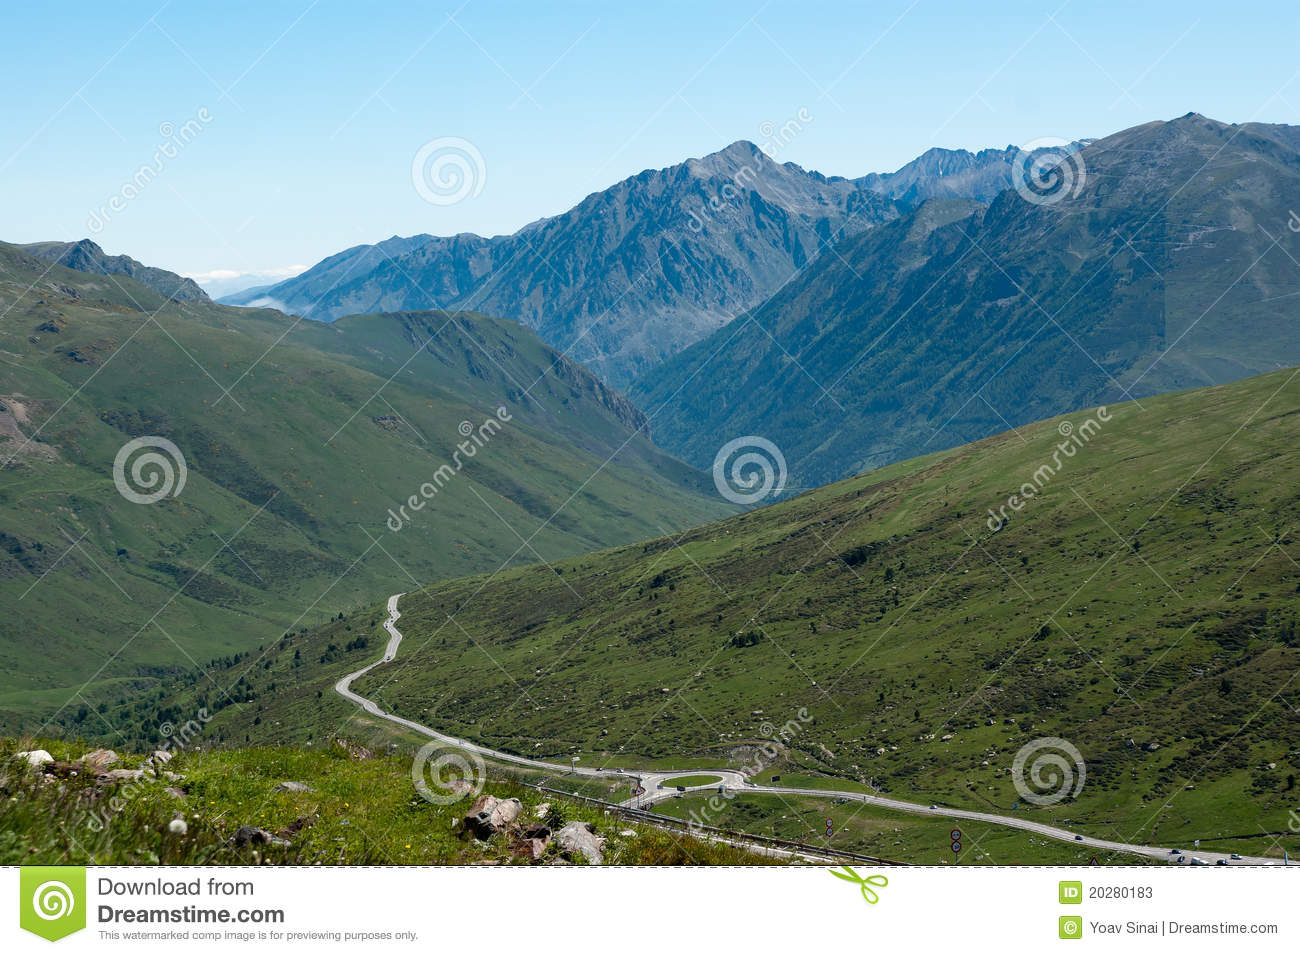 Landscape of French Pyrenees